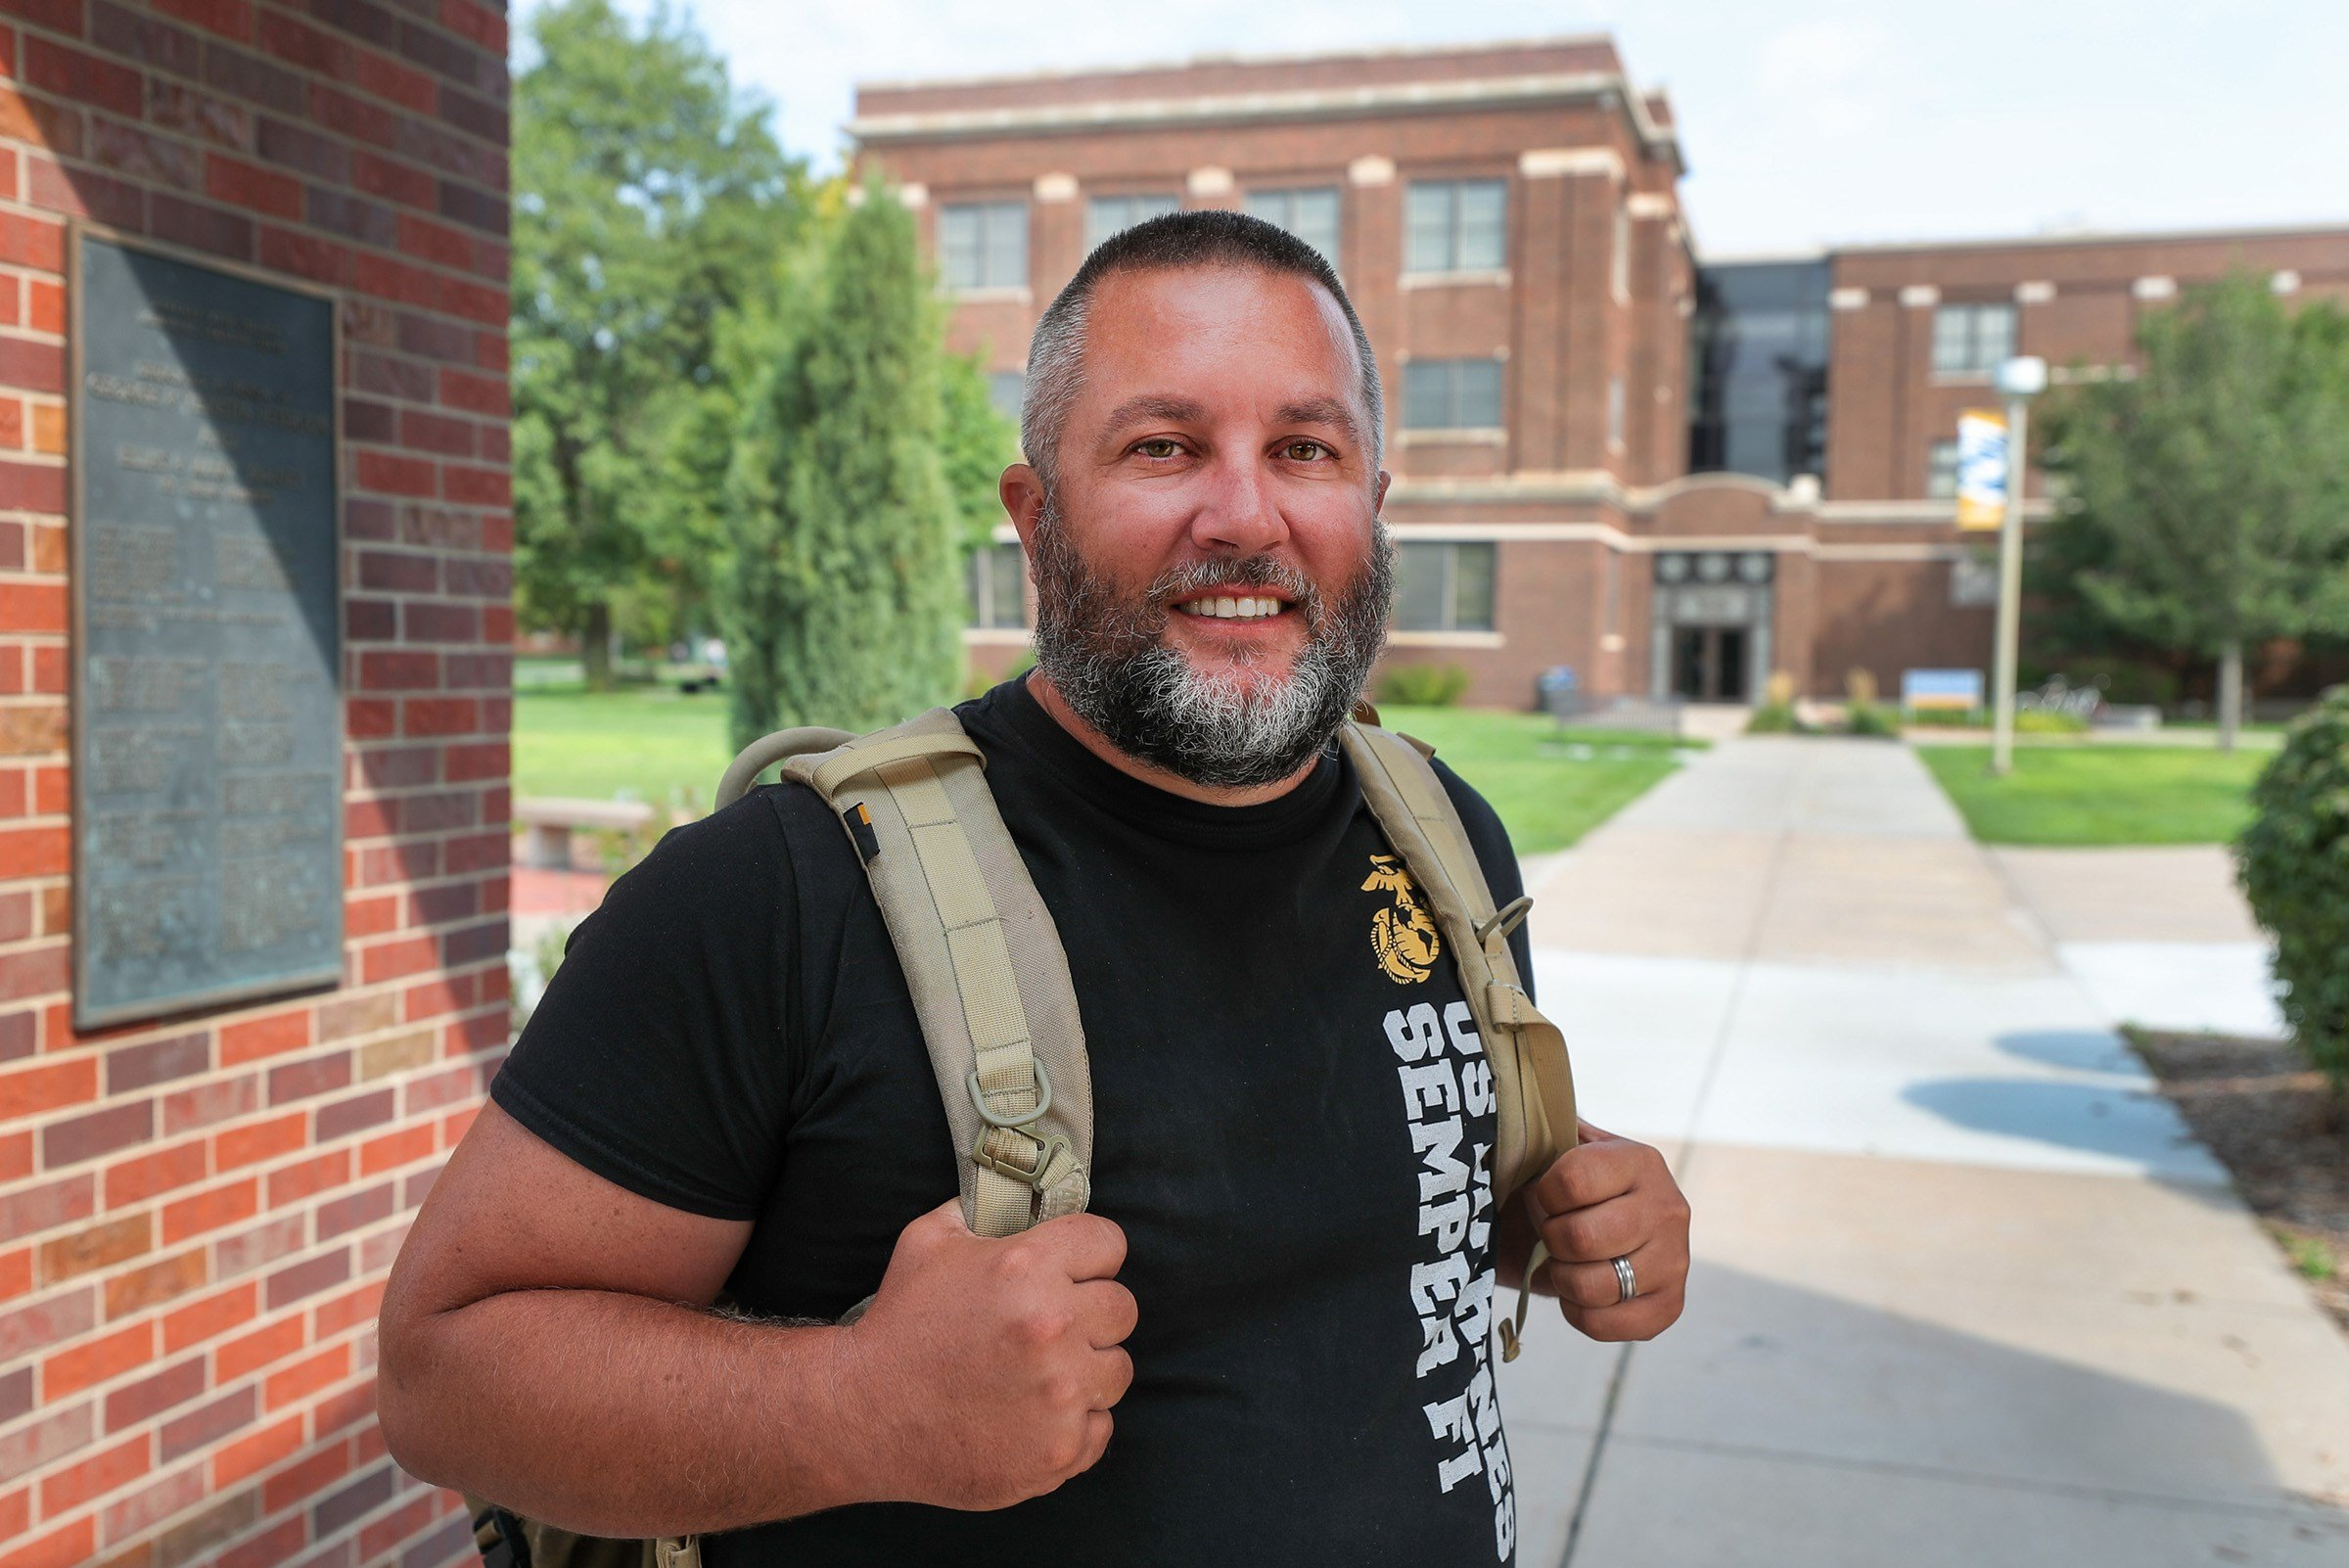 20 years ago, UNK senior Lance Blythe left college to serve his country